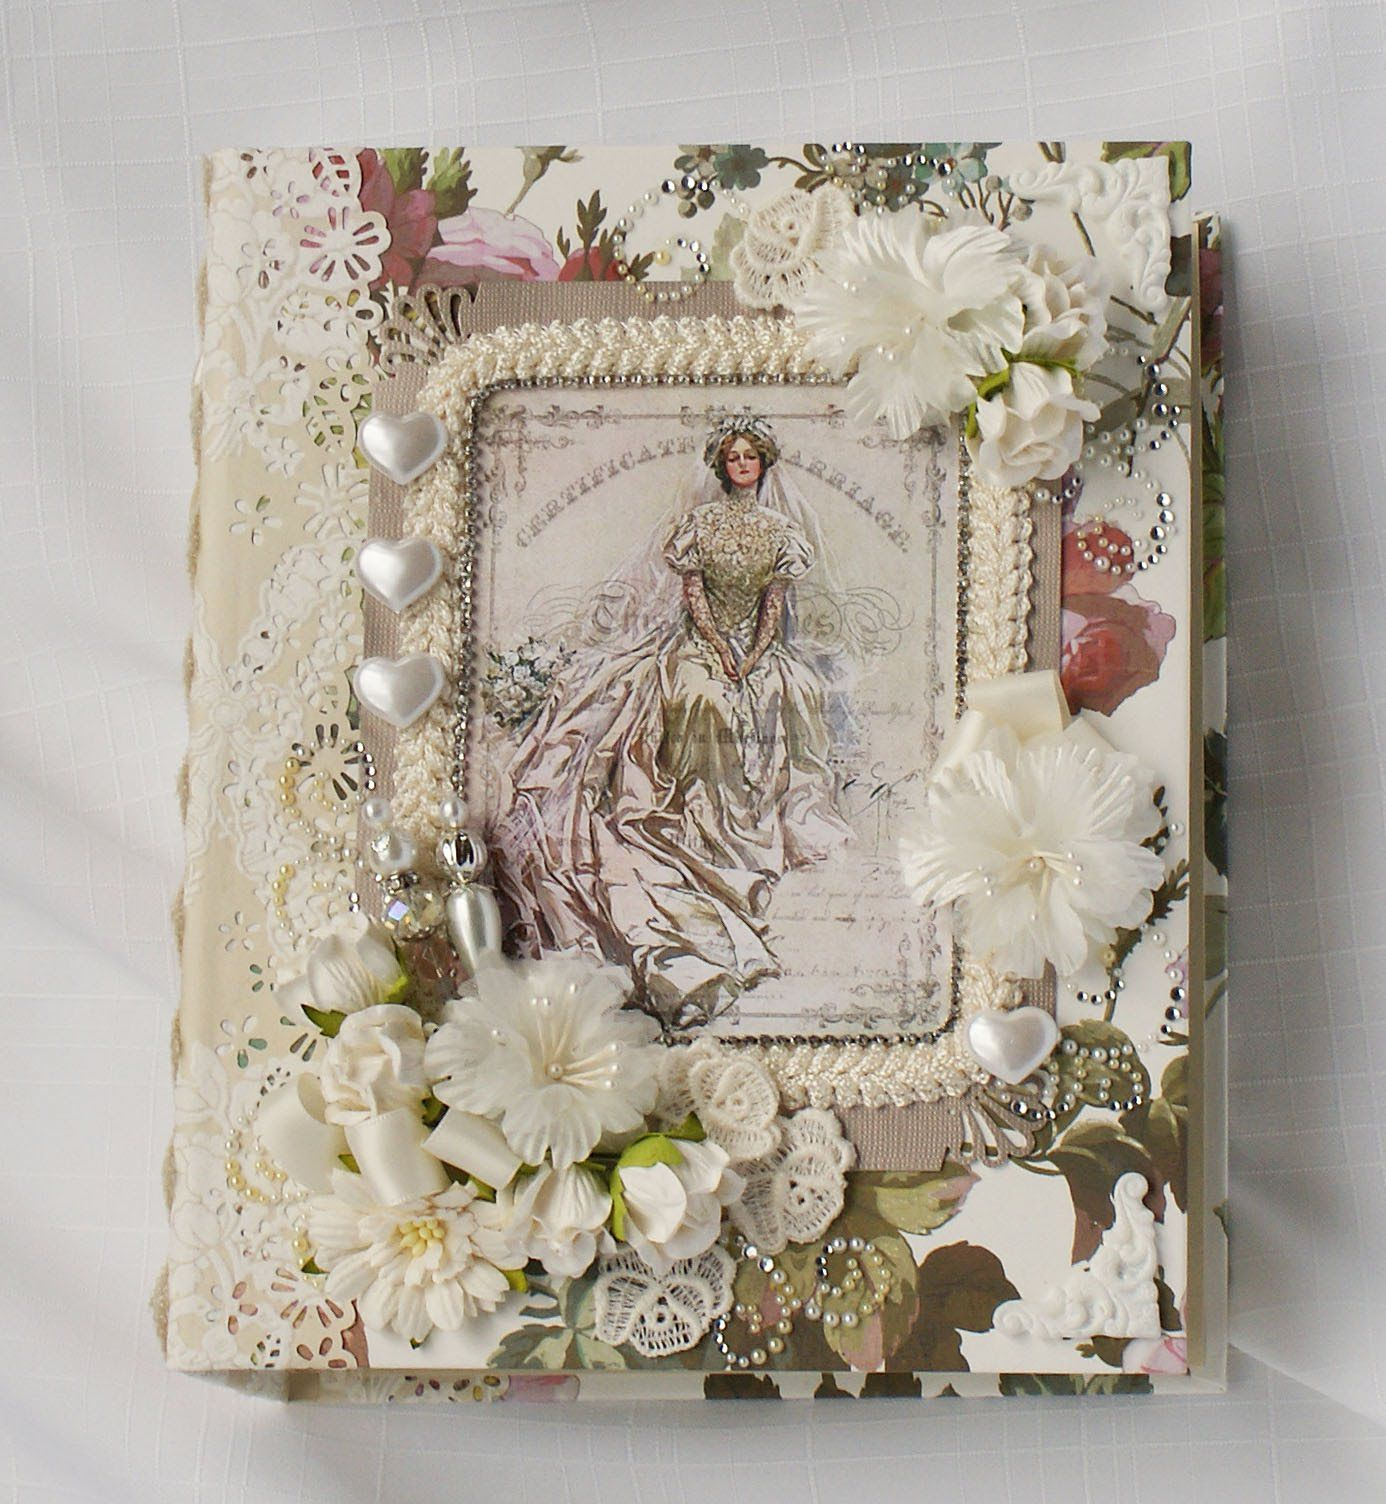 Diy Wedding Album Ideas: Wedding Handmade Chipboard Scrapbook Photo Album.